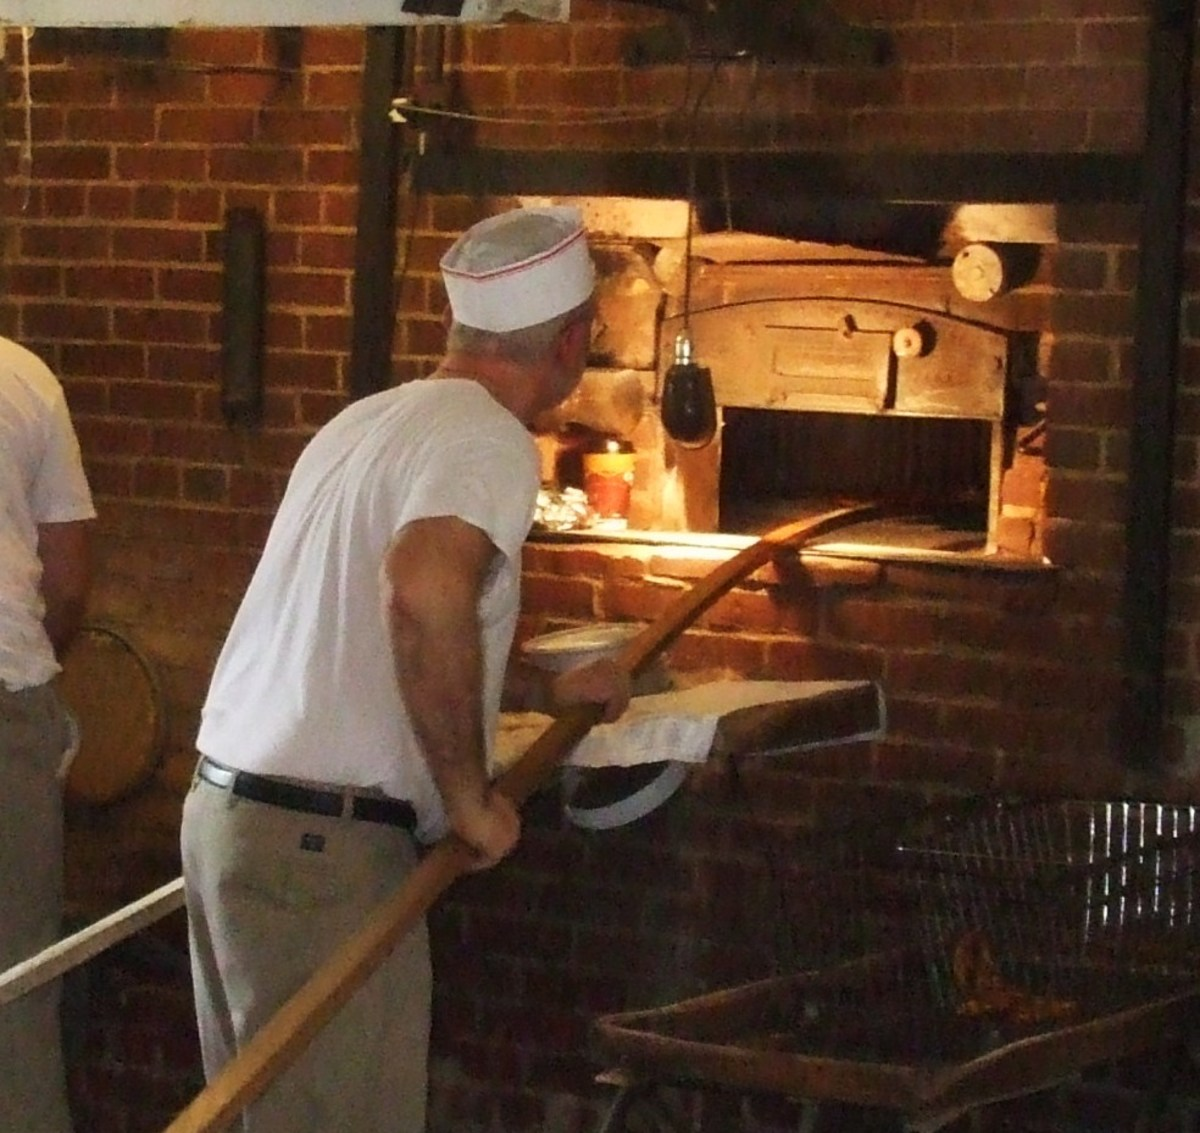 Using a peel to put pretzels into the brick oven at Shuey's Pretzels, Lebanon, PA.